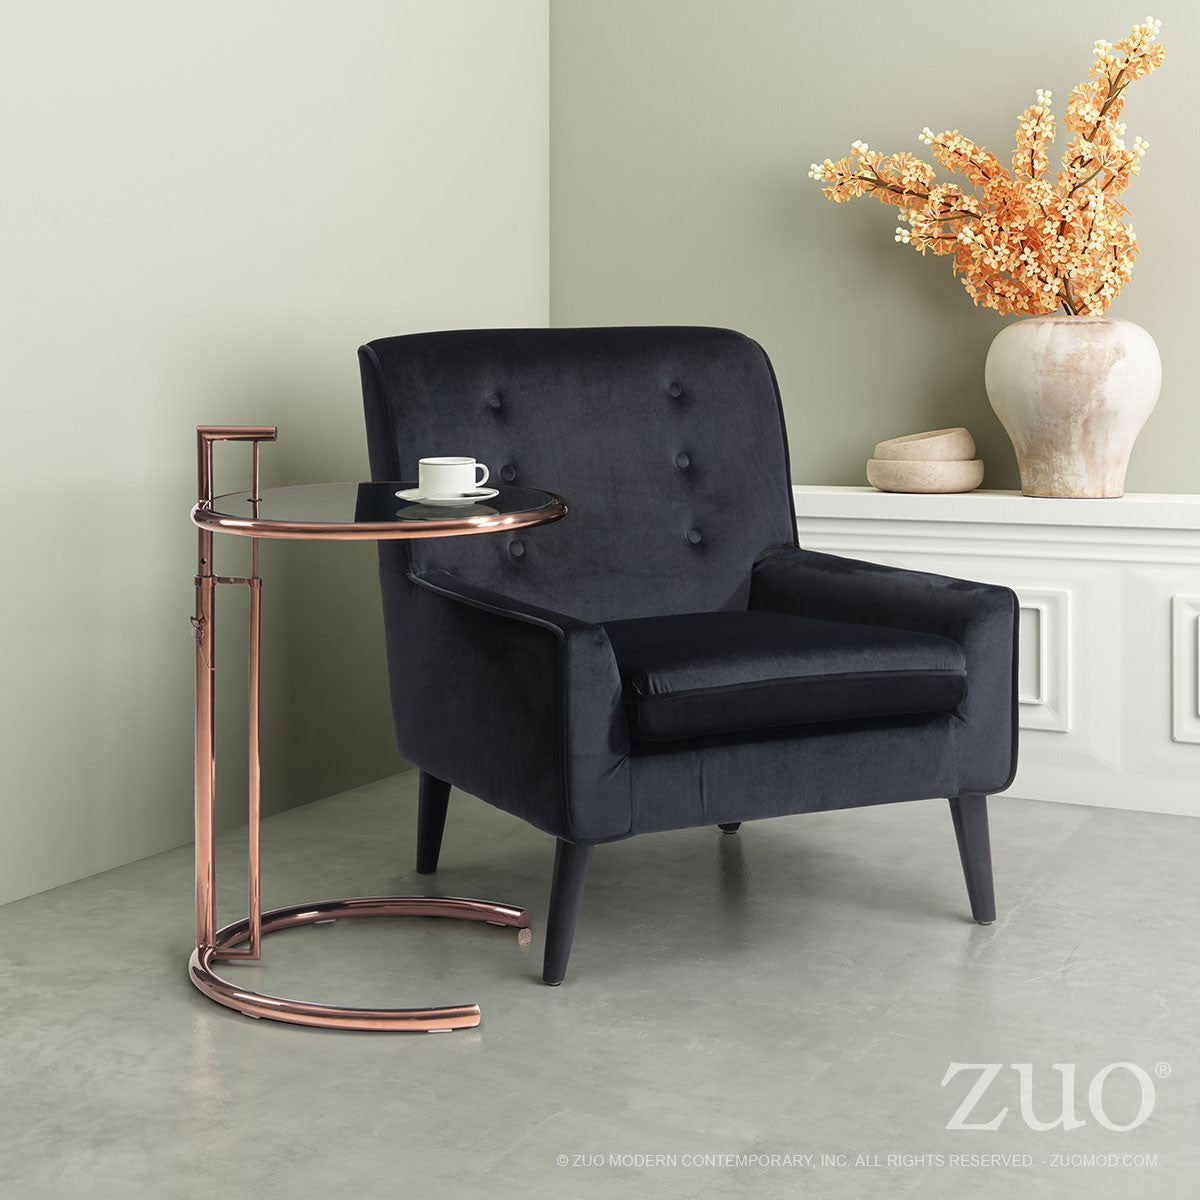 Eileen Grey Side Table in Rose Gold Steel with Black Tempered Glass Top